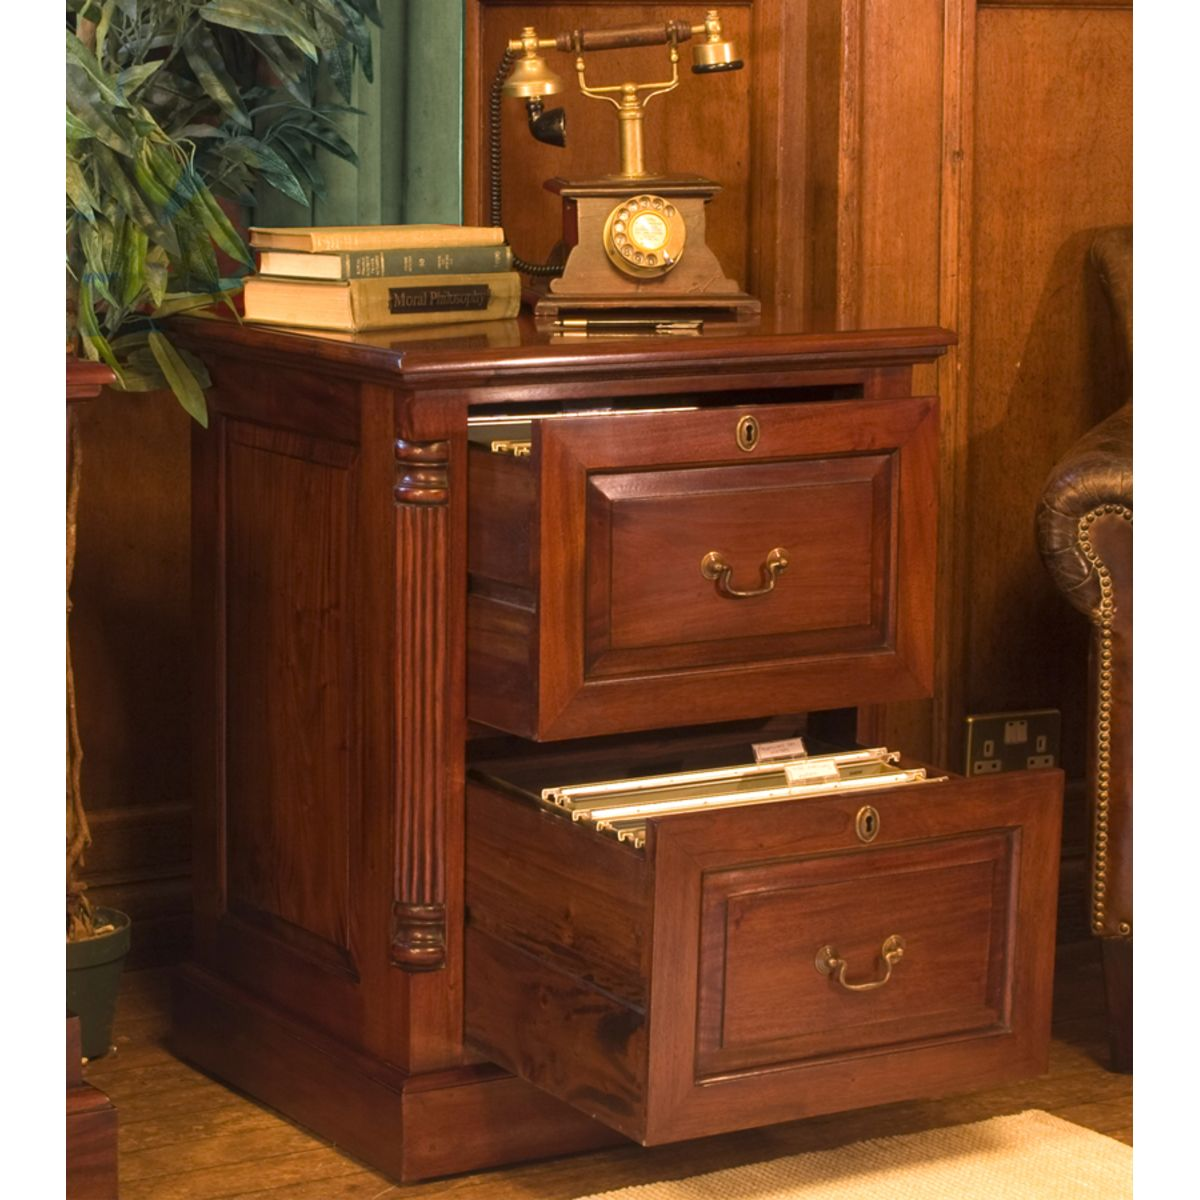 La Roque Mahogany Two Drawer Filing Cabinet Wooden